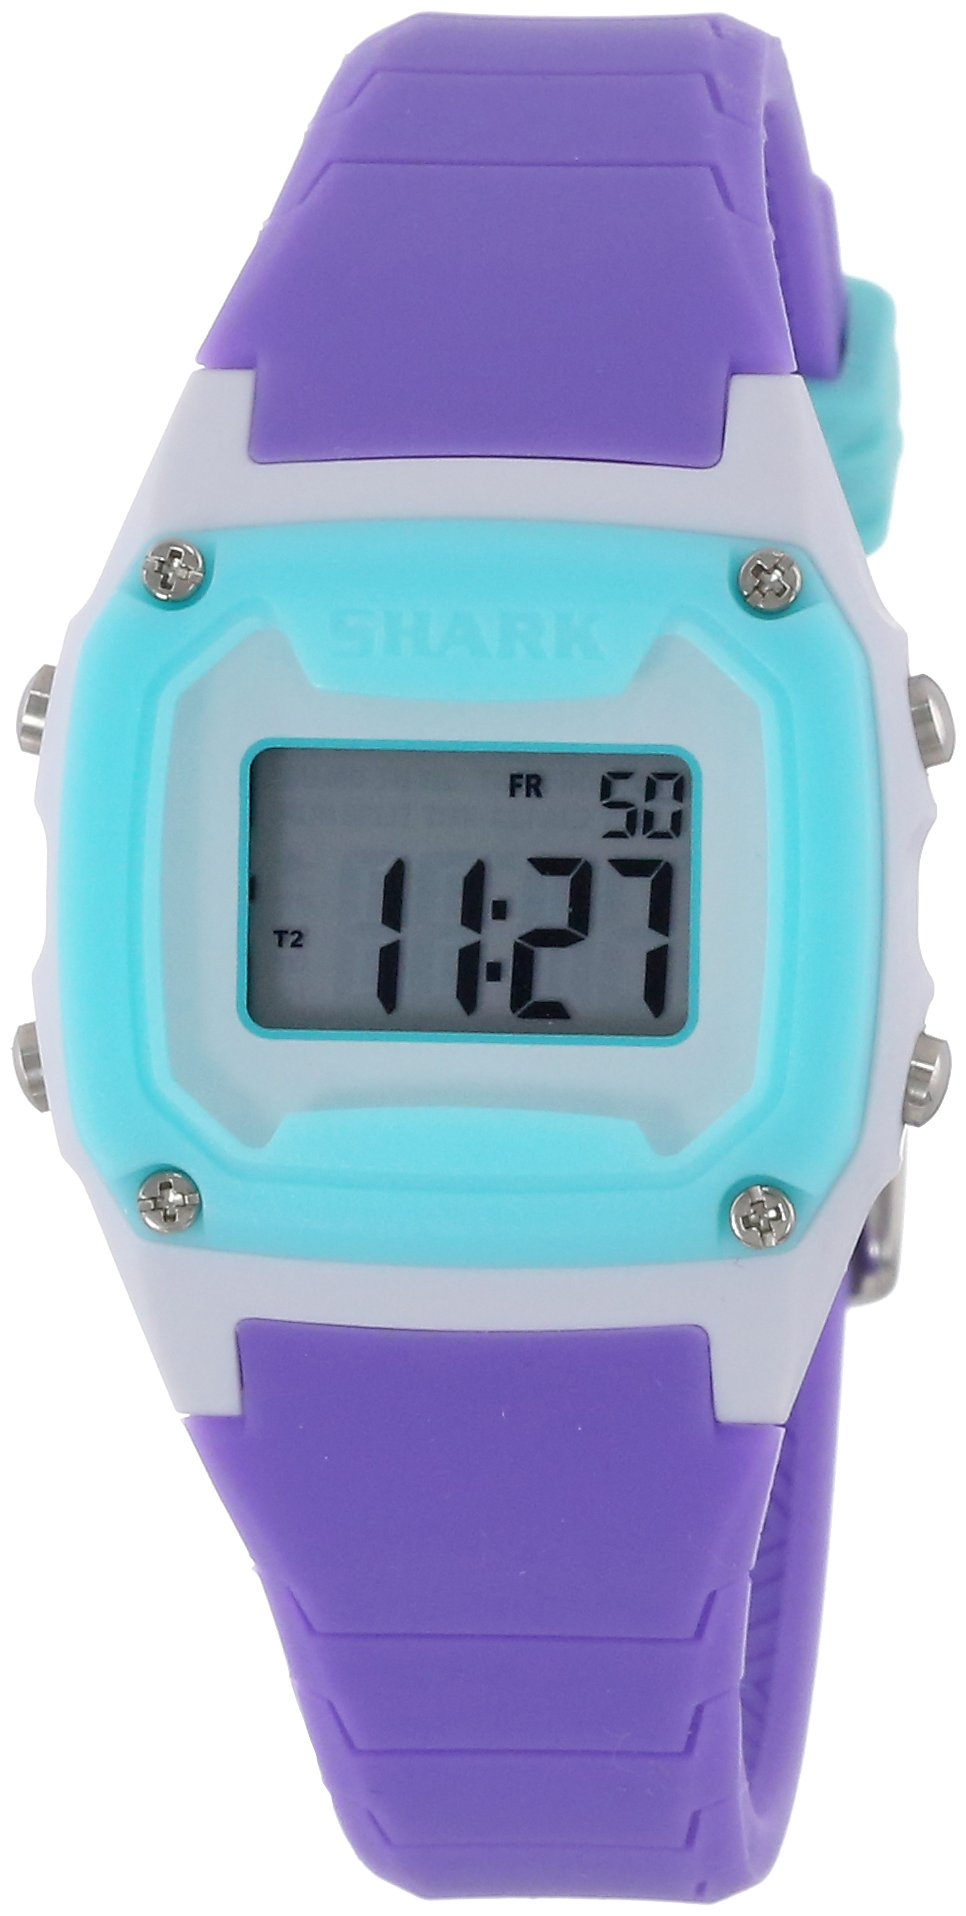 Freestyle Shark Mini Turq/Pur/Wht Unisex Watch 10006633 by Freestyle